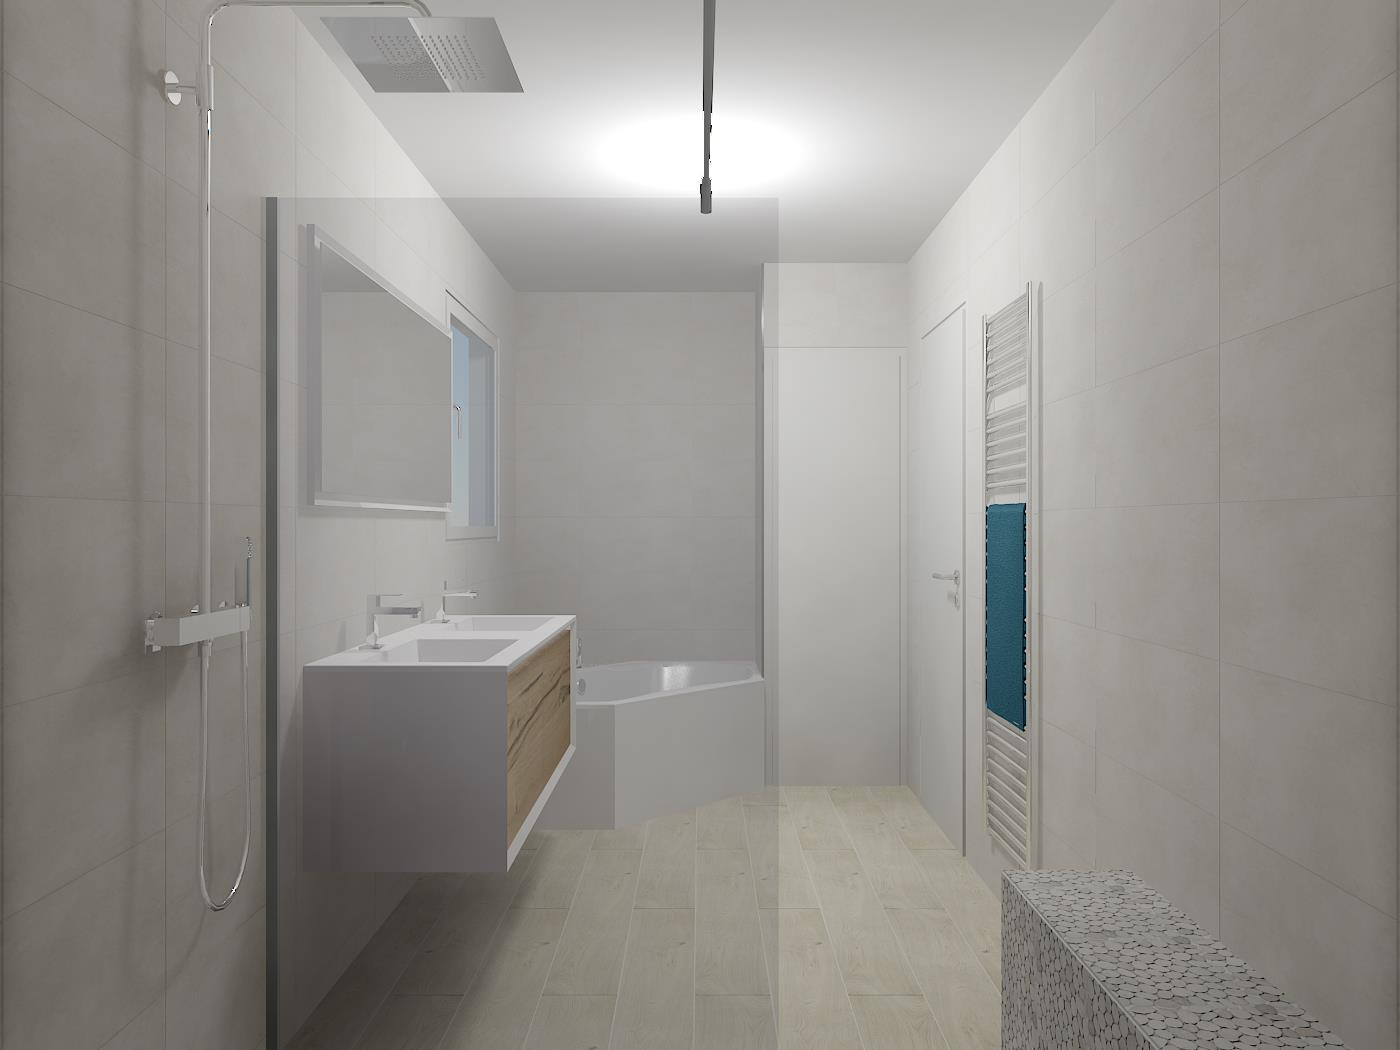 Mattout carrelage dem16617 v3 2 1 bathroom by mattout for Mattout carrelage aubagne